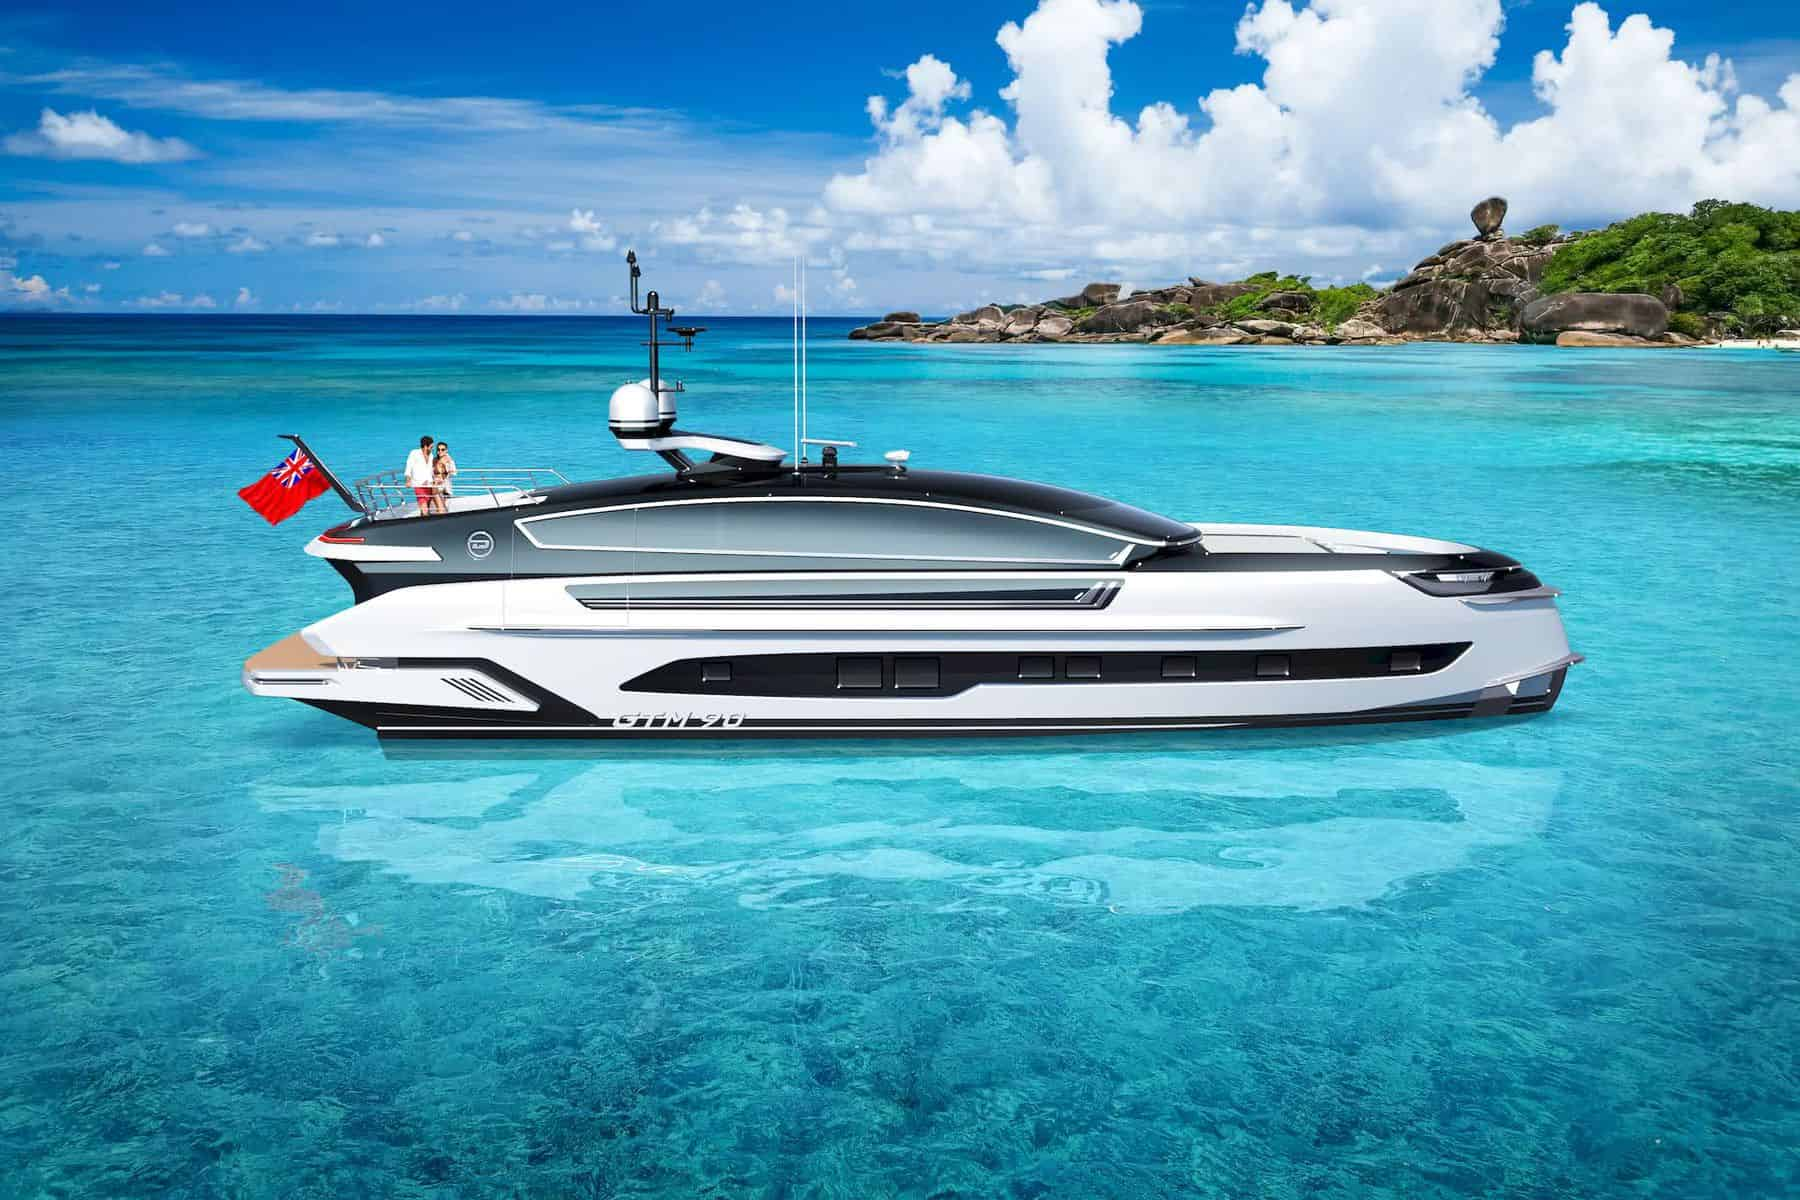 Dynamiq and Klassen Team Up for a Supercar-Inspired Yacht Concept